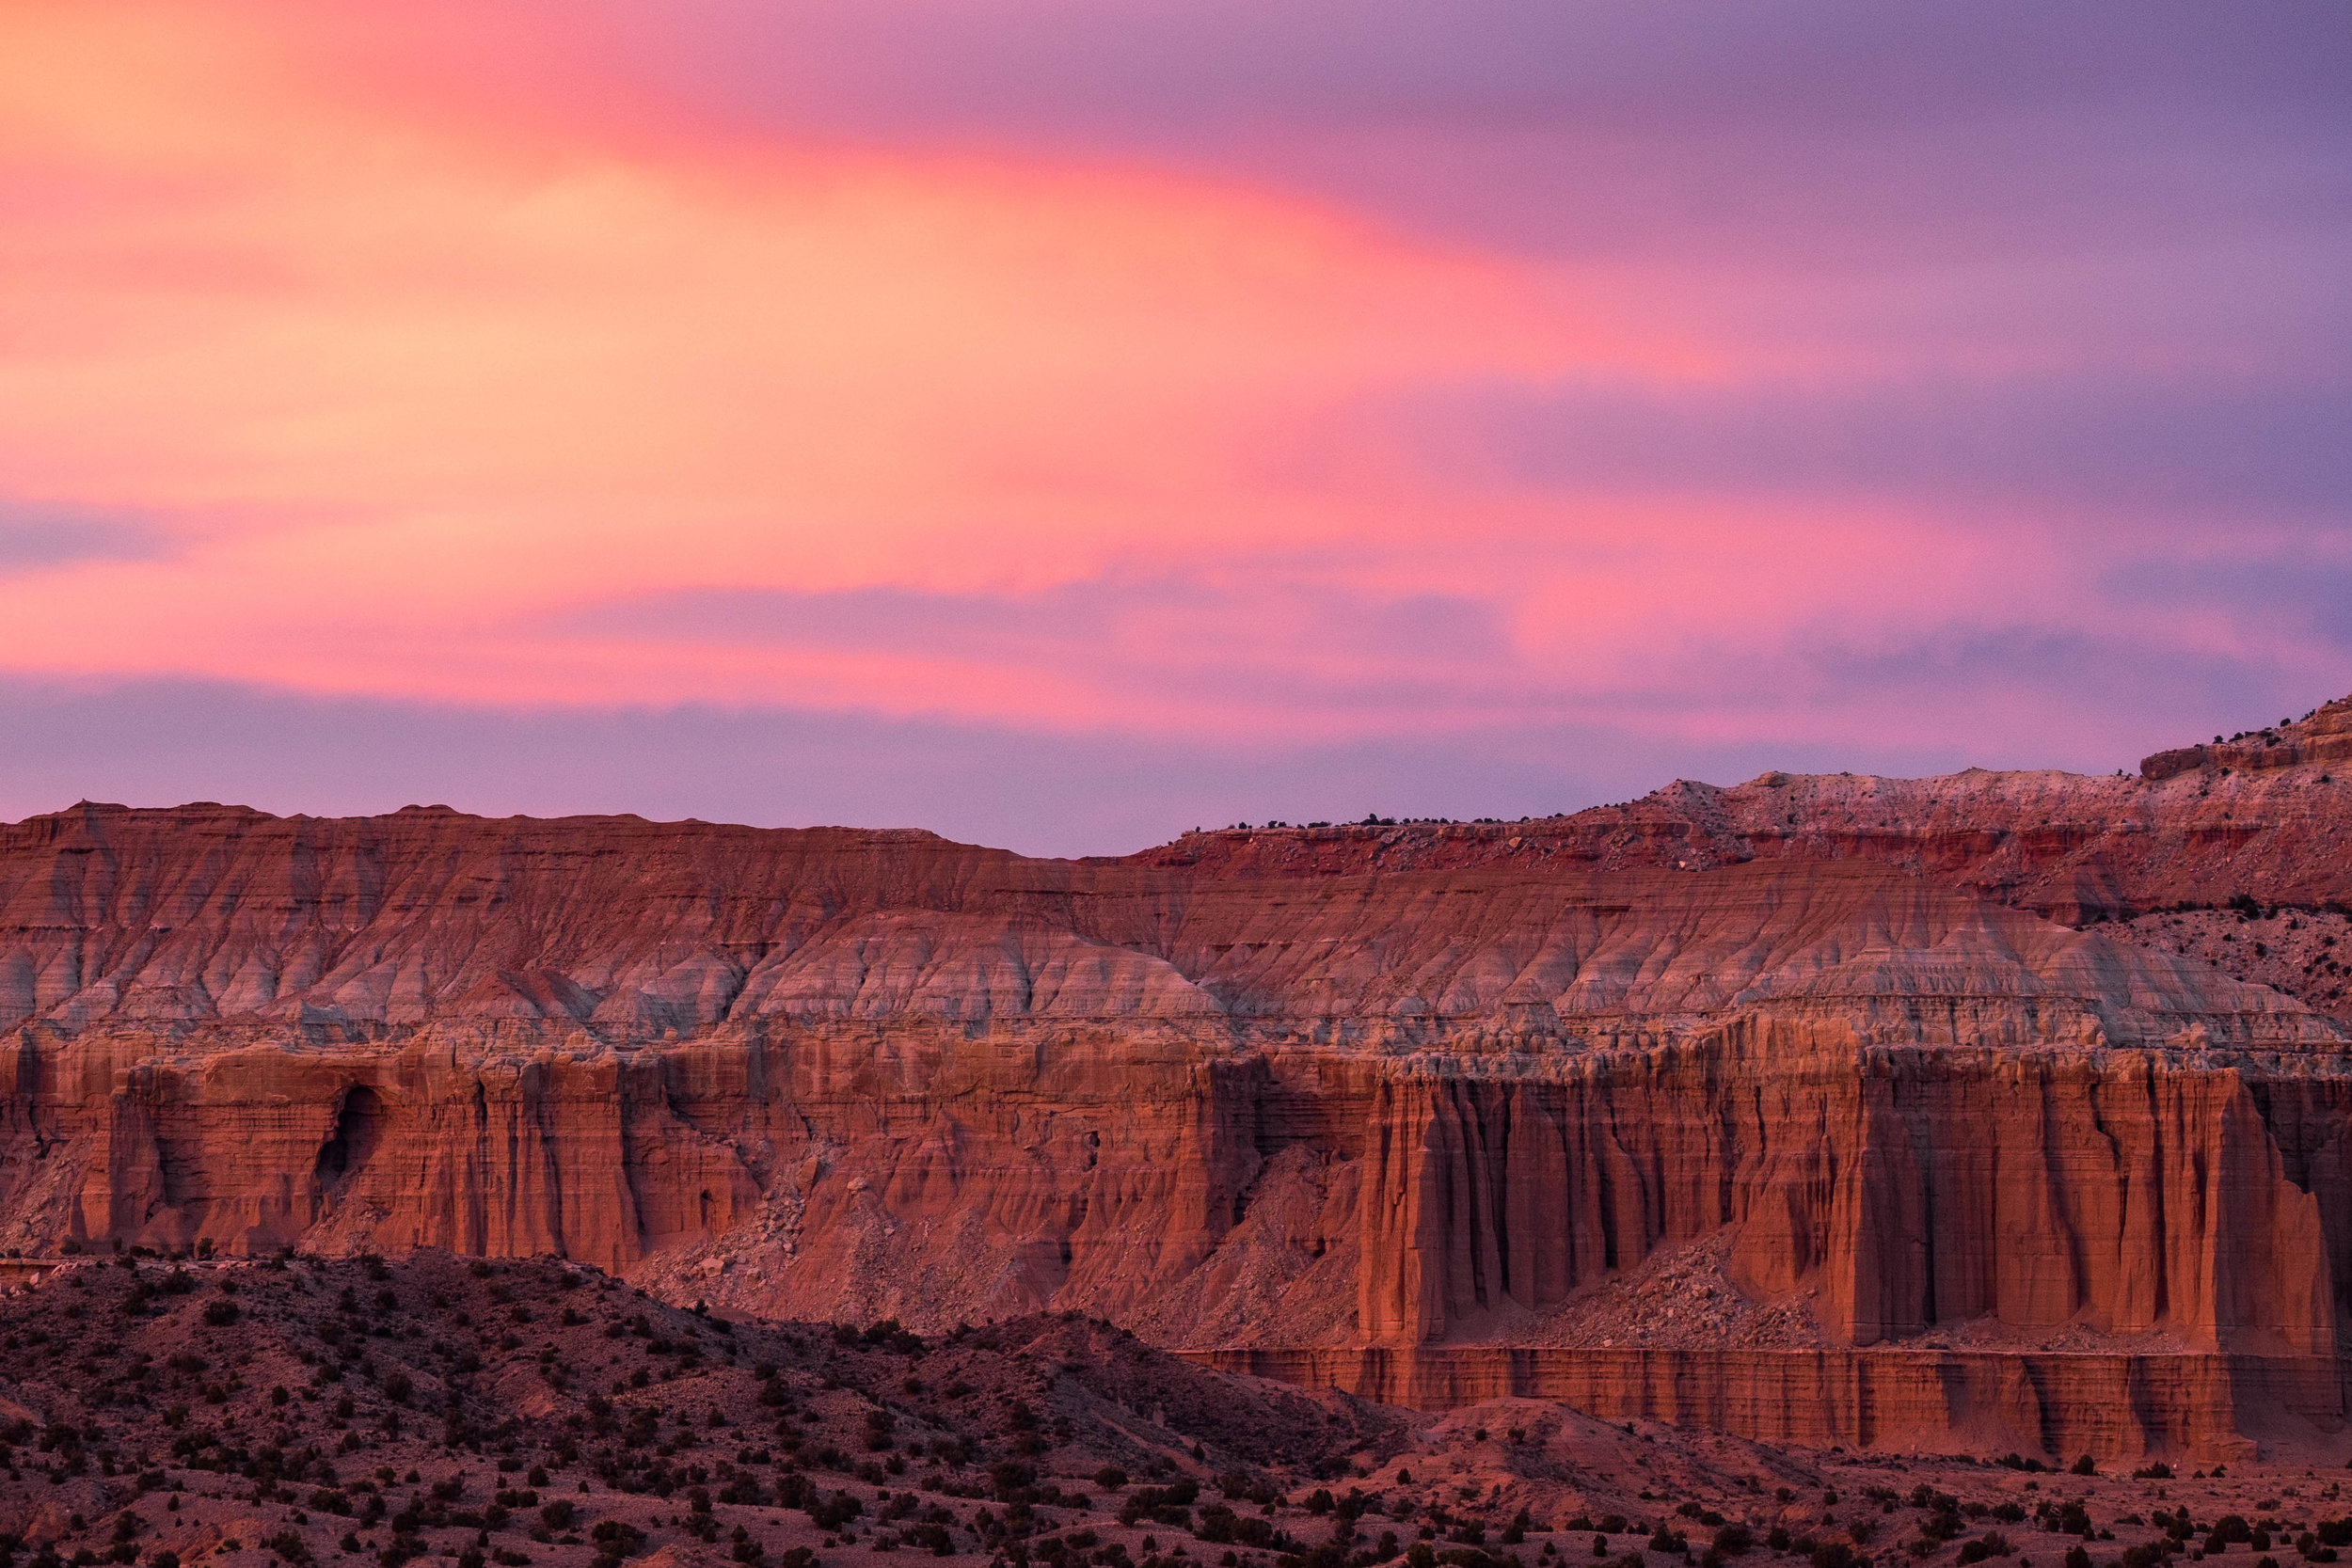 Sunset brought incredible colors to the valley.